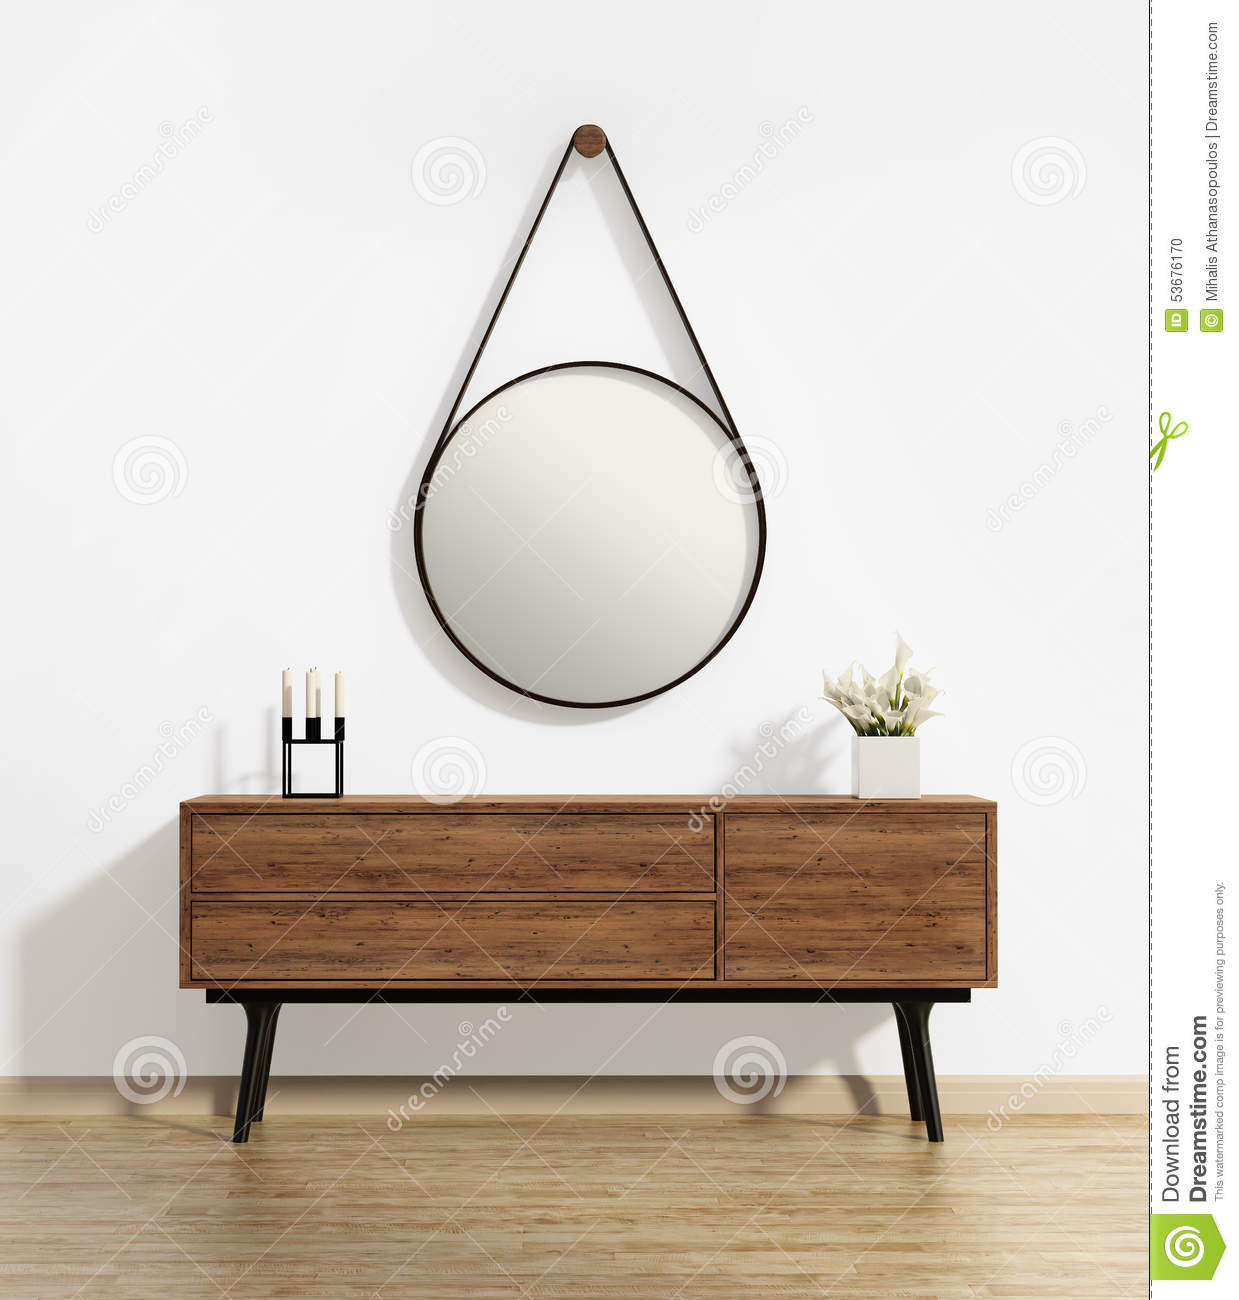 Superb img of Console Table With Captain's Round Mirror Stock Photo Image  with #83A823 color and 1239x1300 pixels